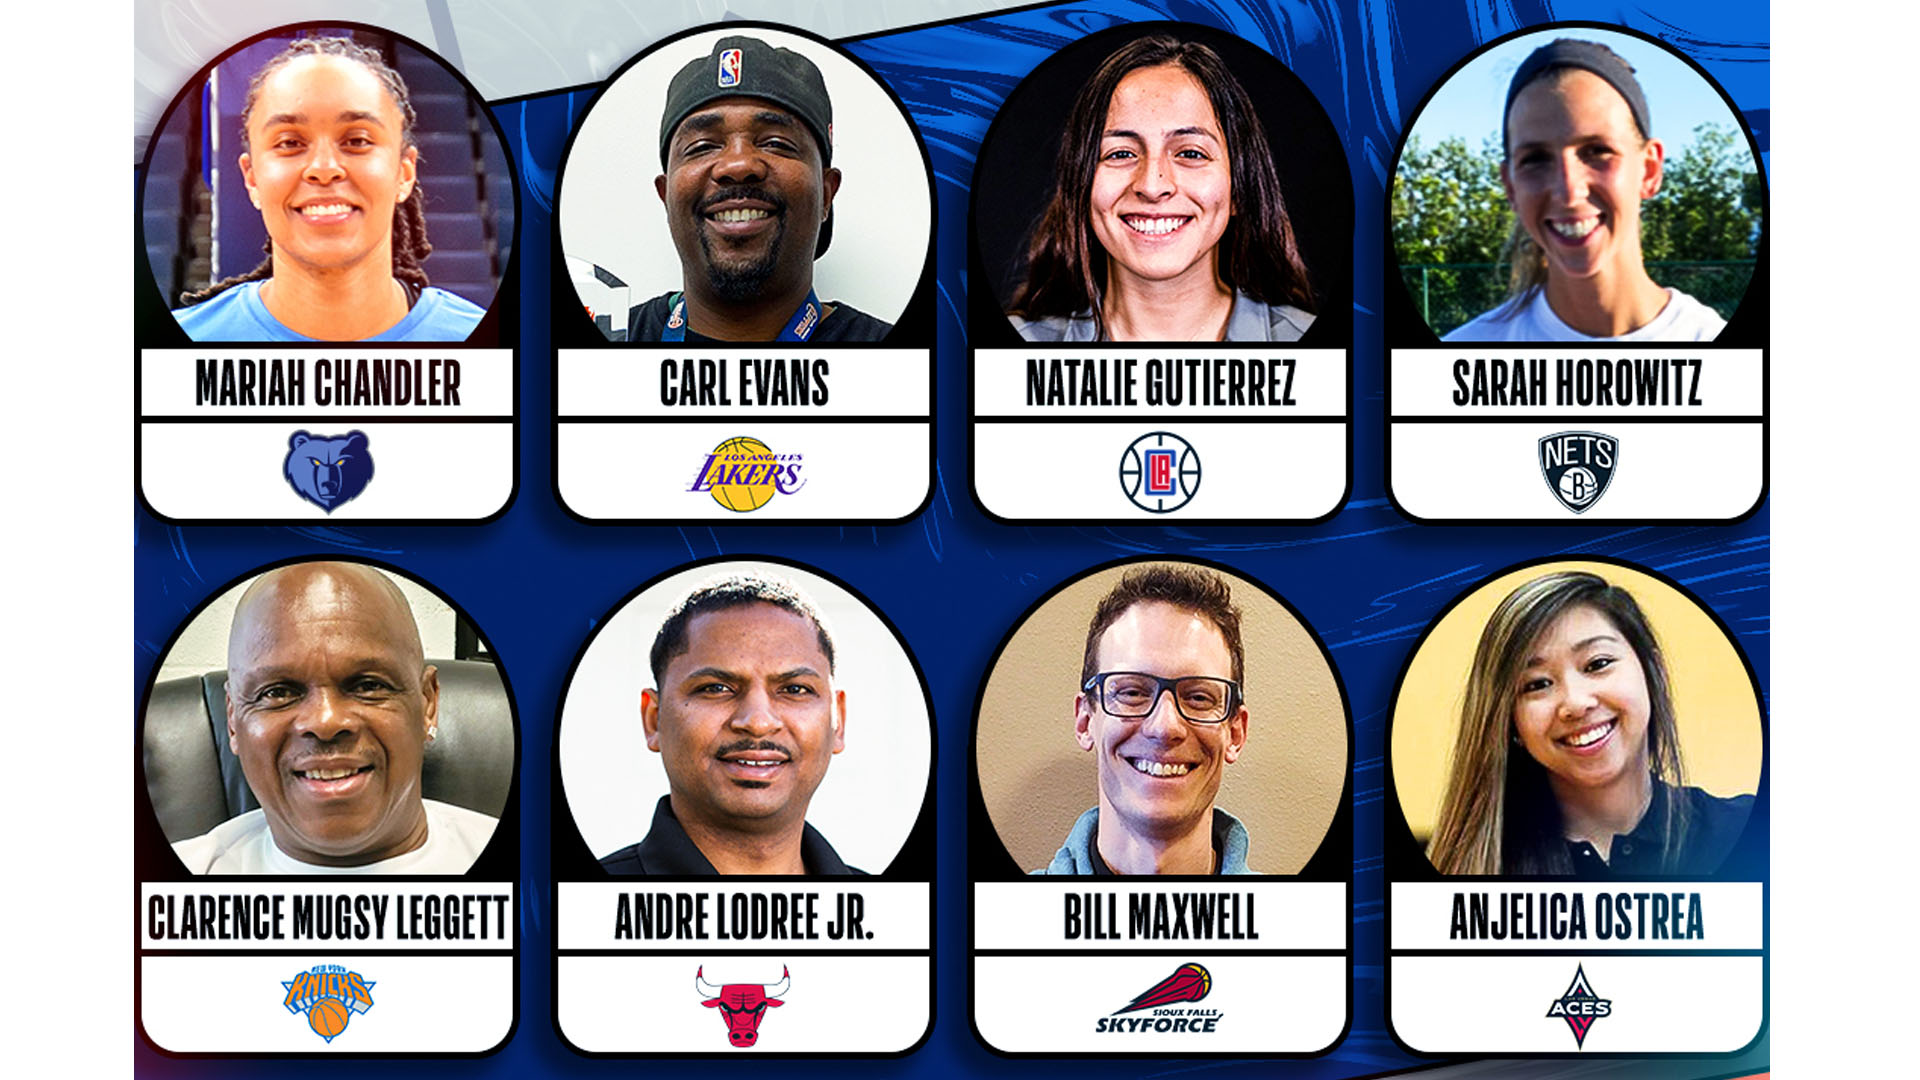 Vote for the 2020-21 Jr. NBA Coach of the Year